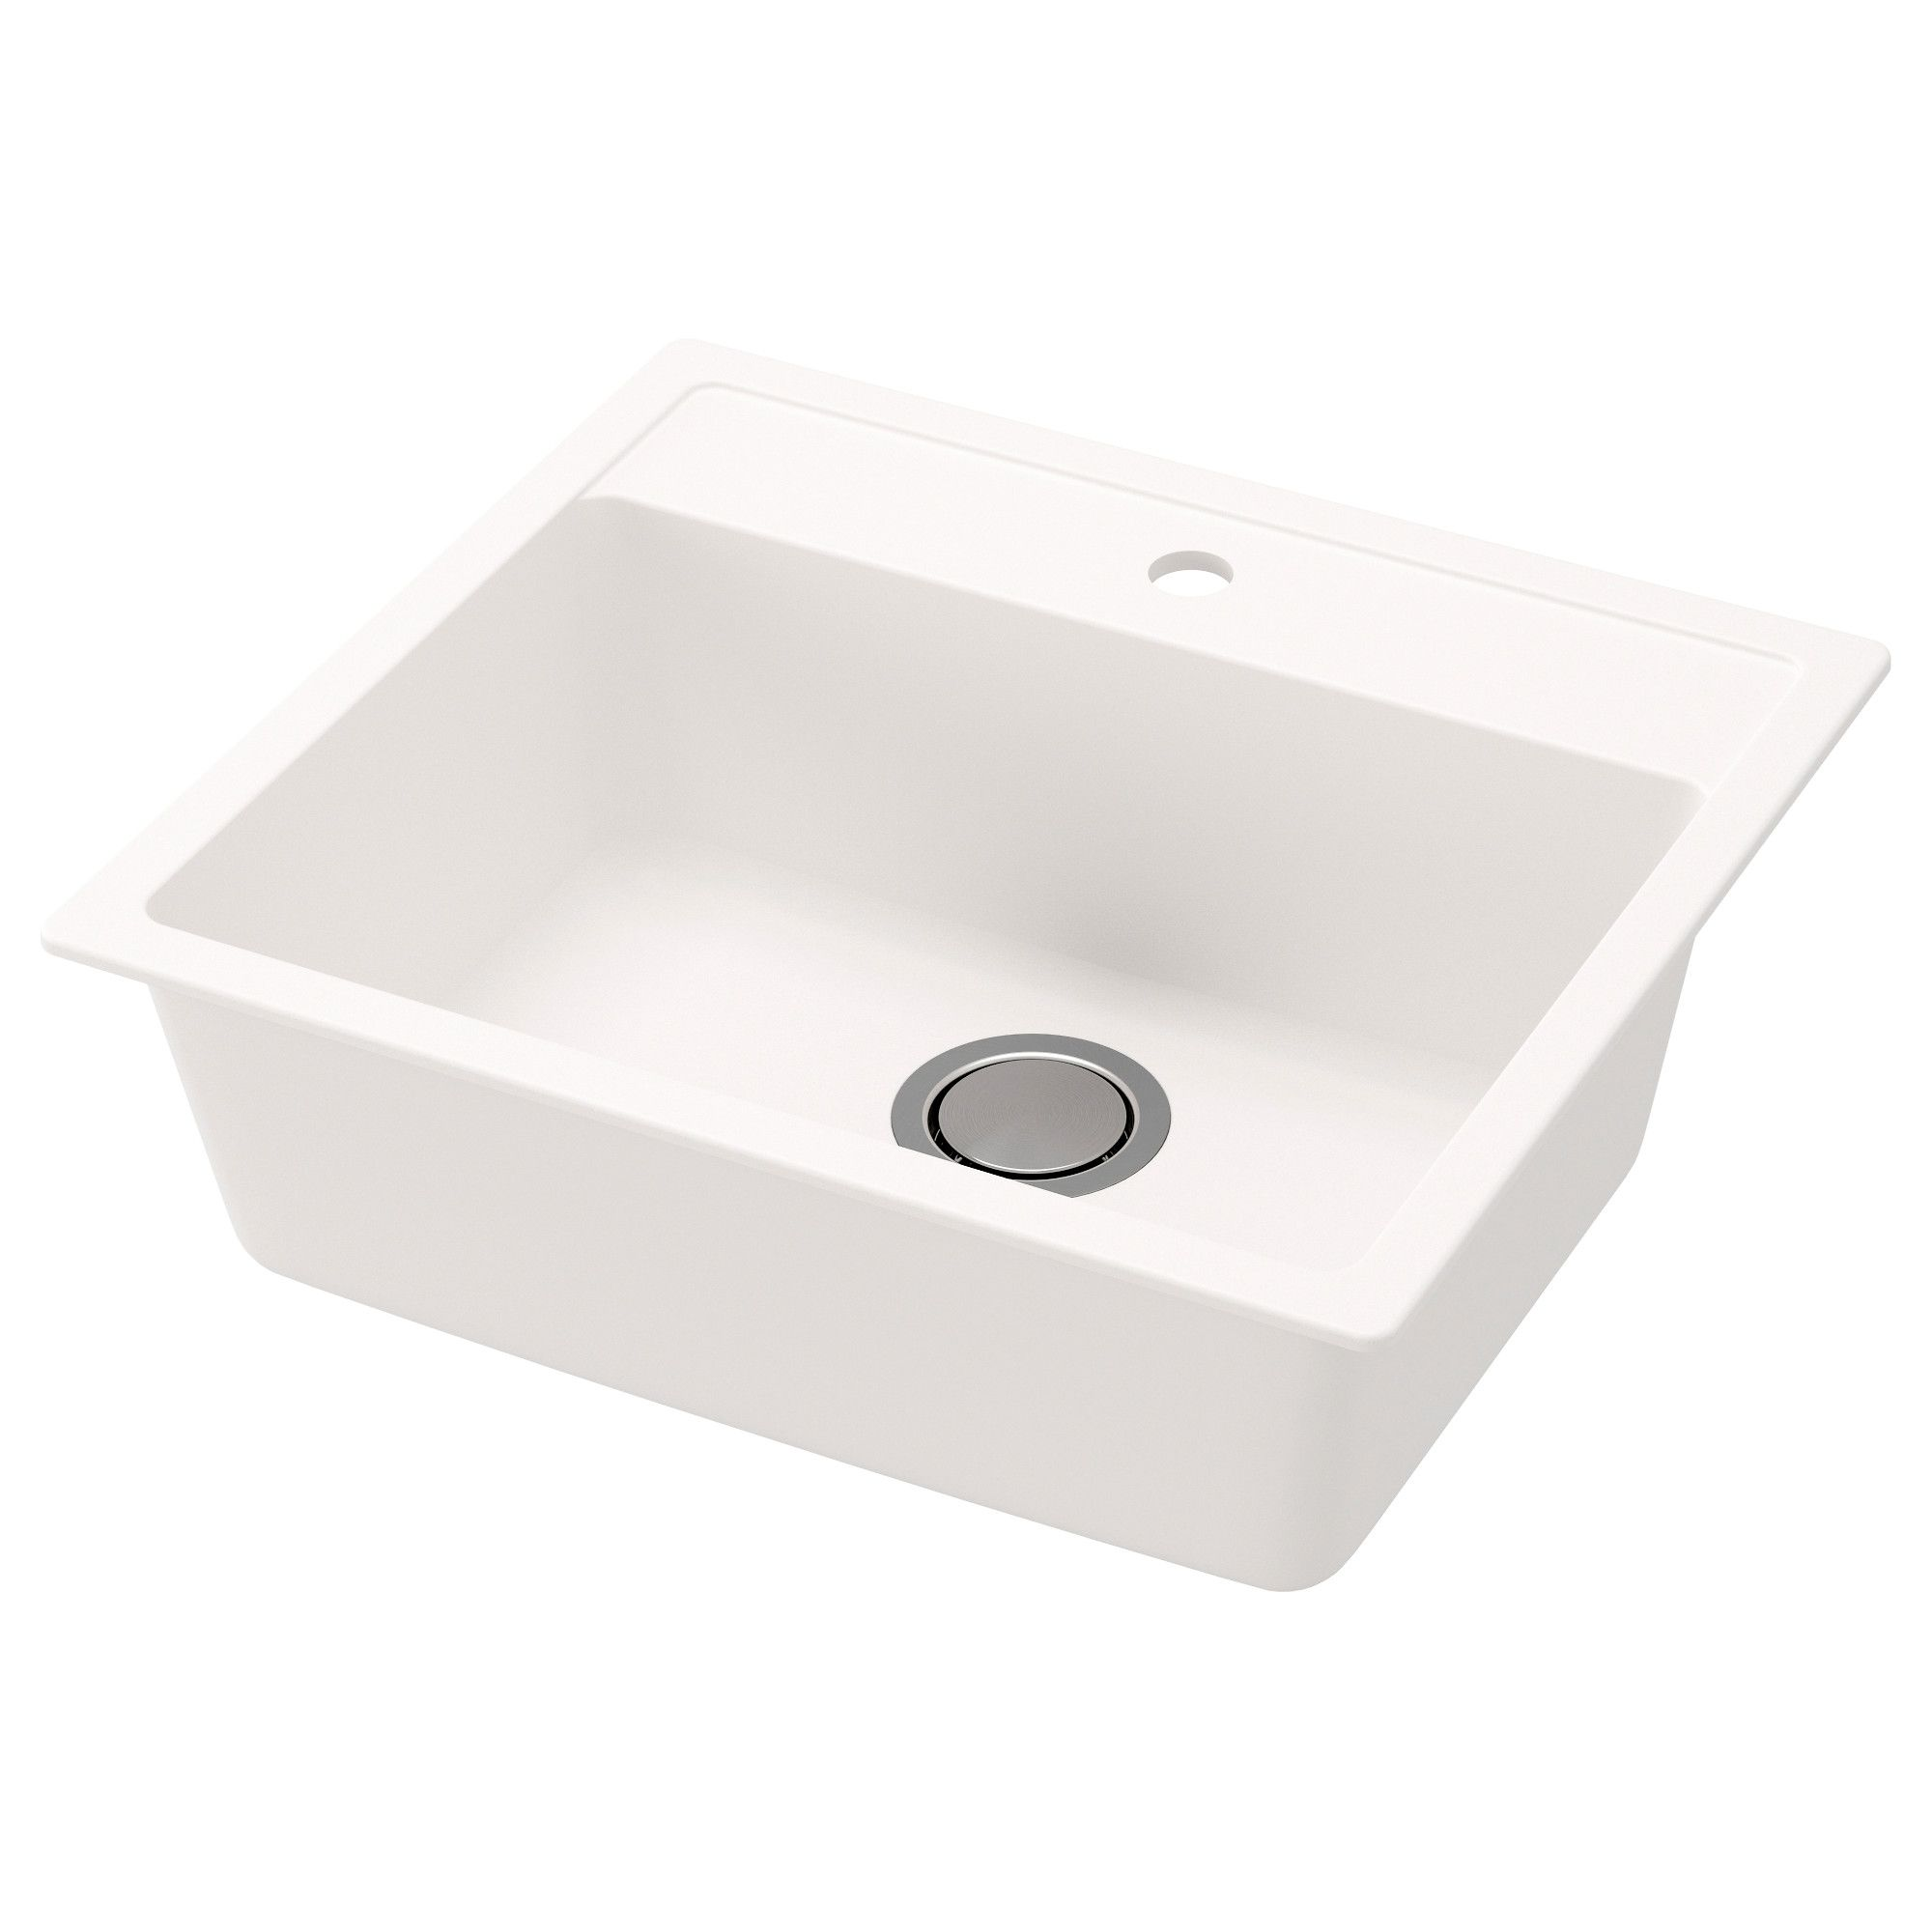 Hallviken Sink White Quartz Composite 22x19 5 8 Sink Bowl Sink Double Bowl Sink